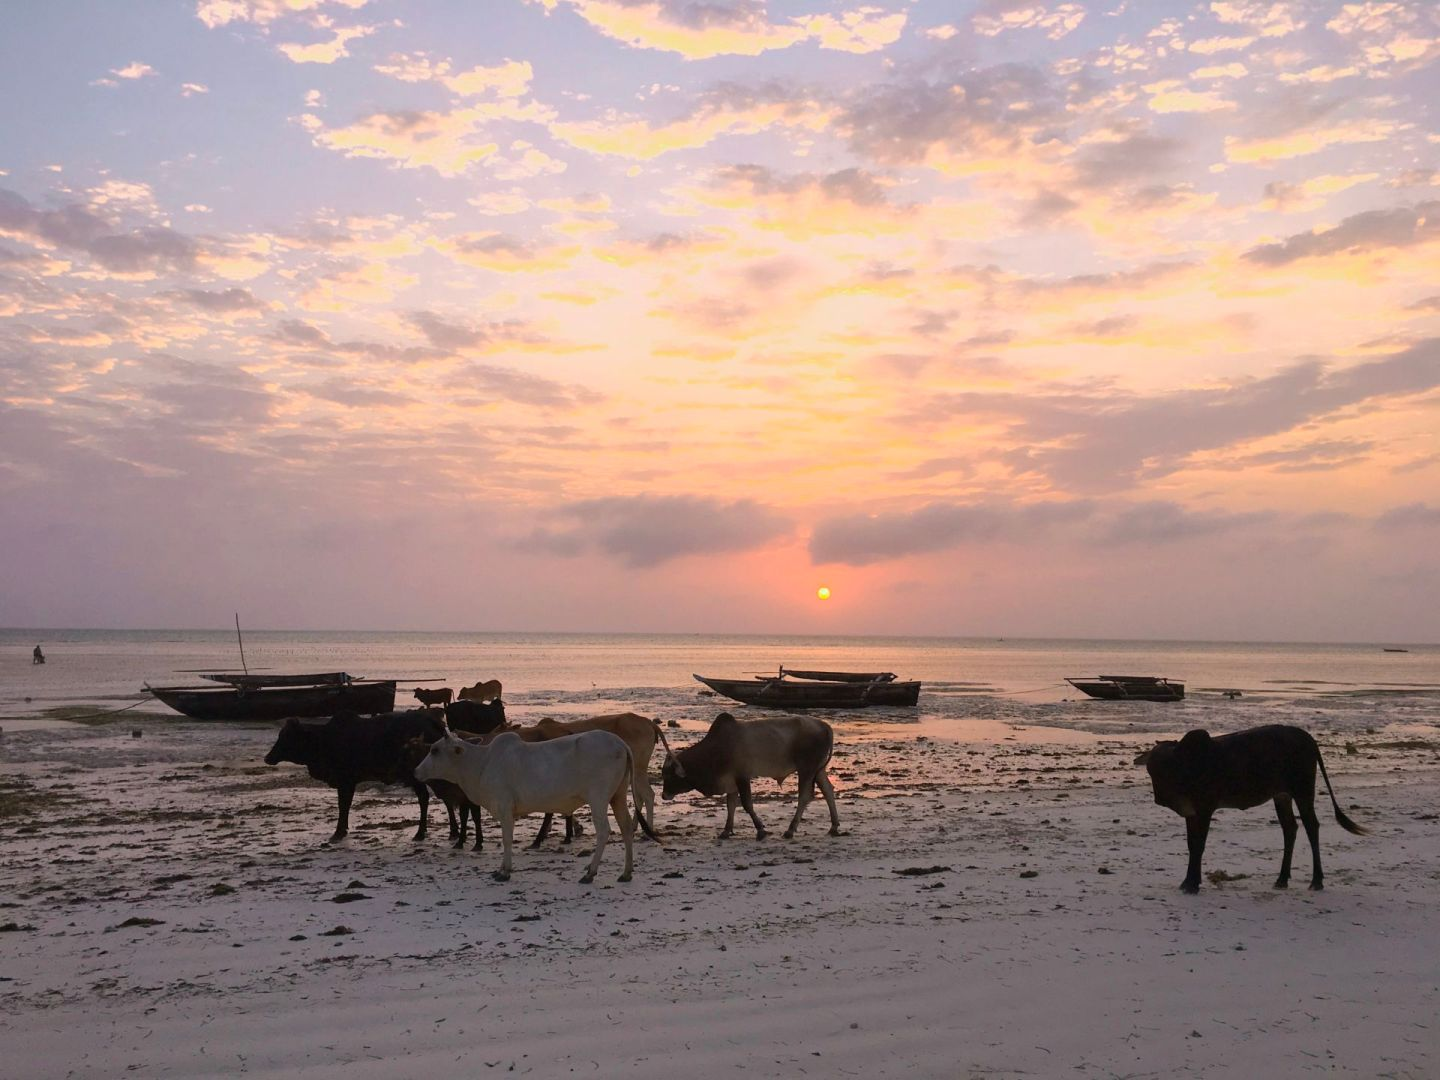 Sunrise on Jambiani beach on Zanzibar